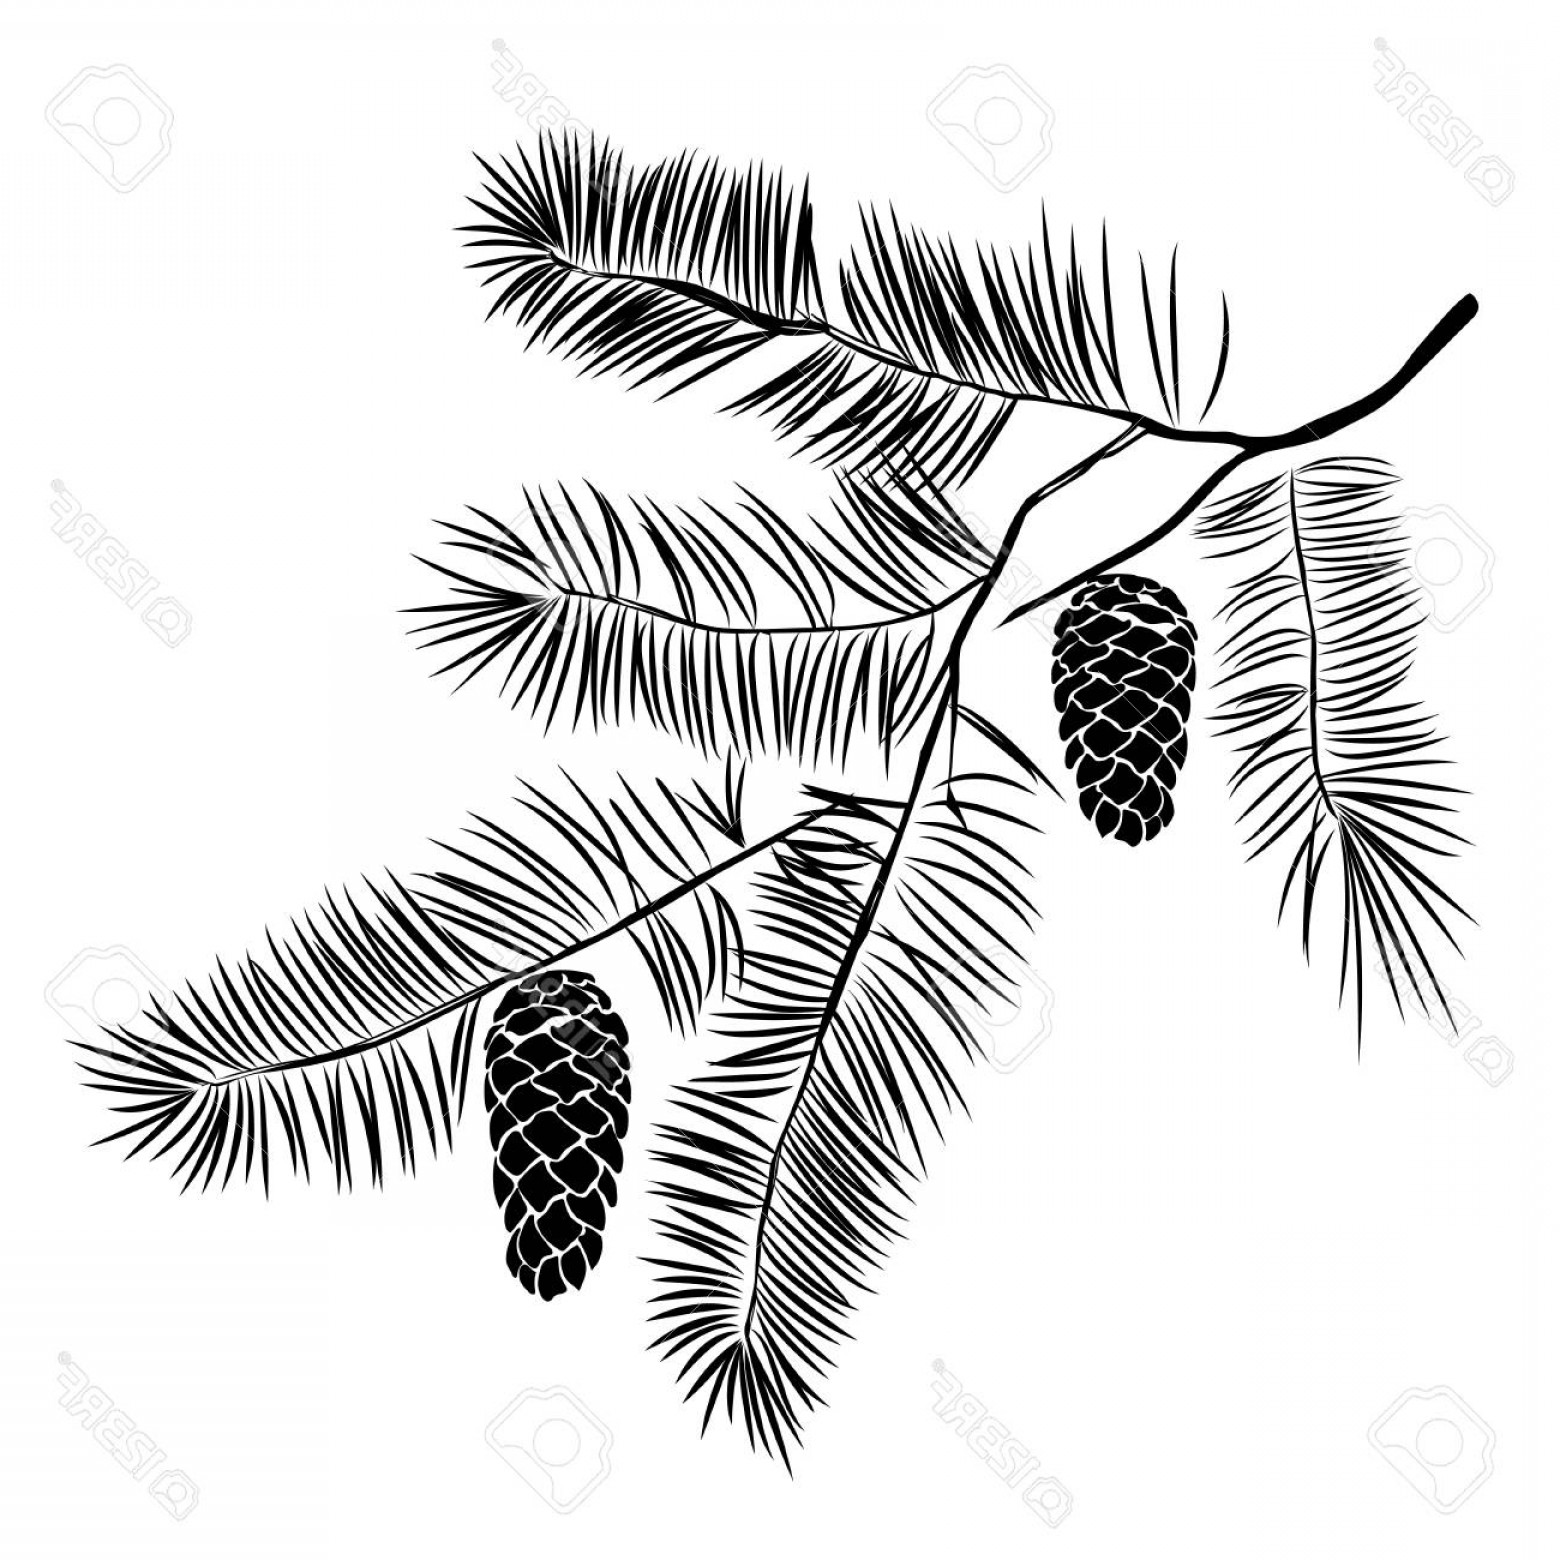 Pine Leaf Vector: Photostock Vector Hand Drawn Pine Tree Branch Isolated On White Background Ink Illustration In Vintage Engraved Style